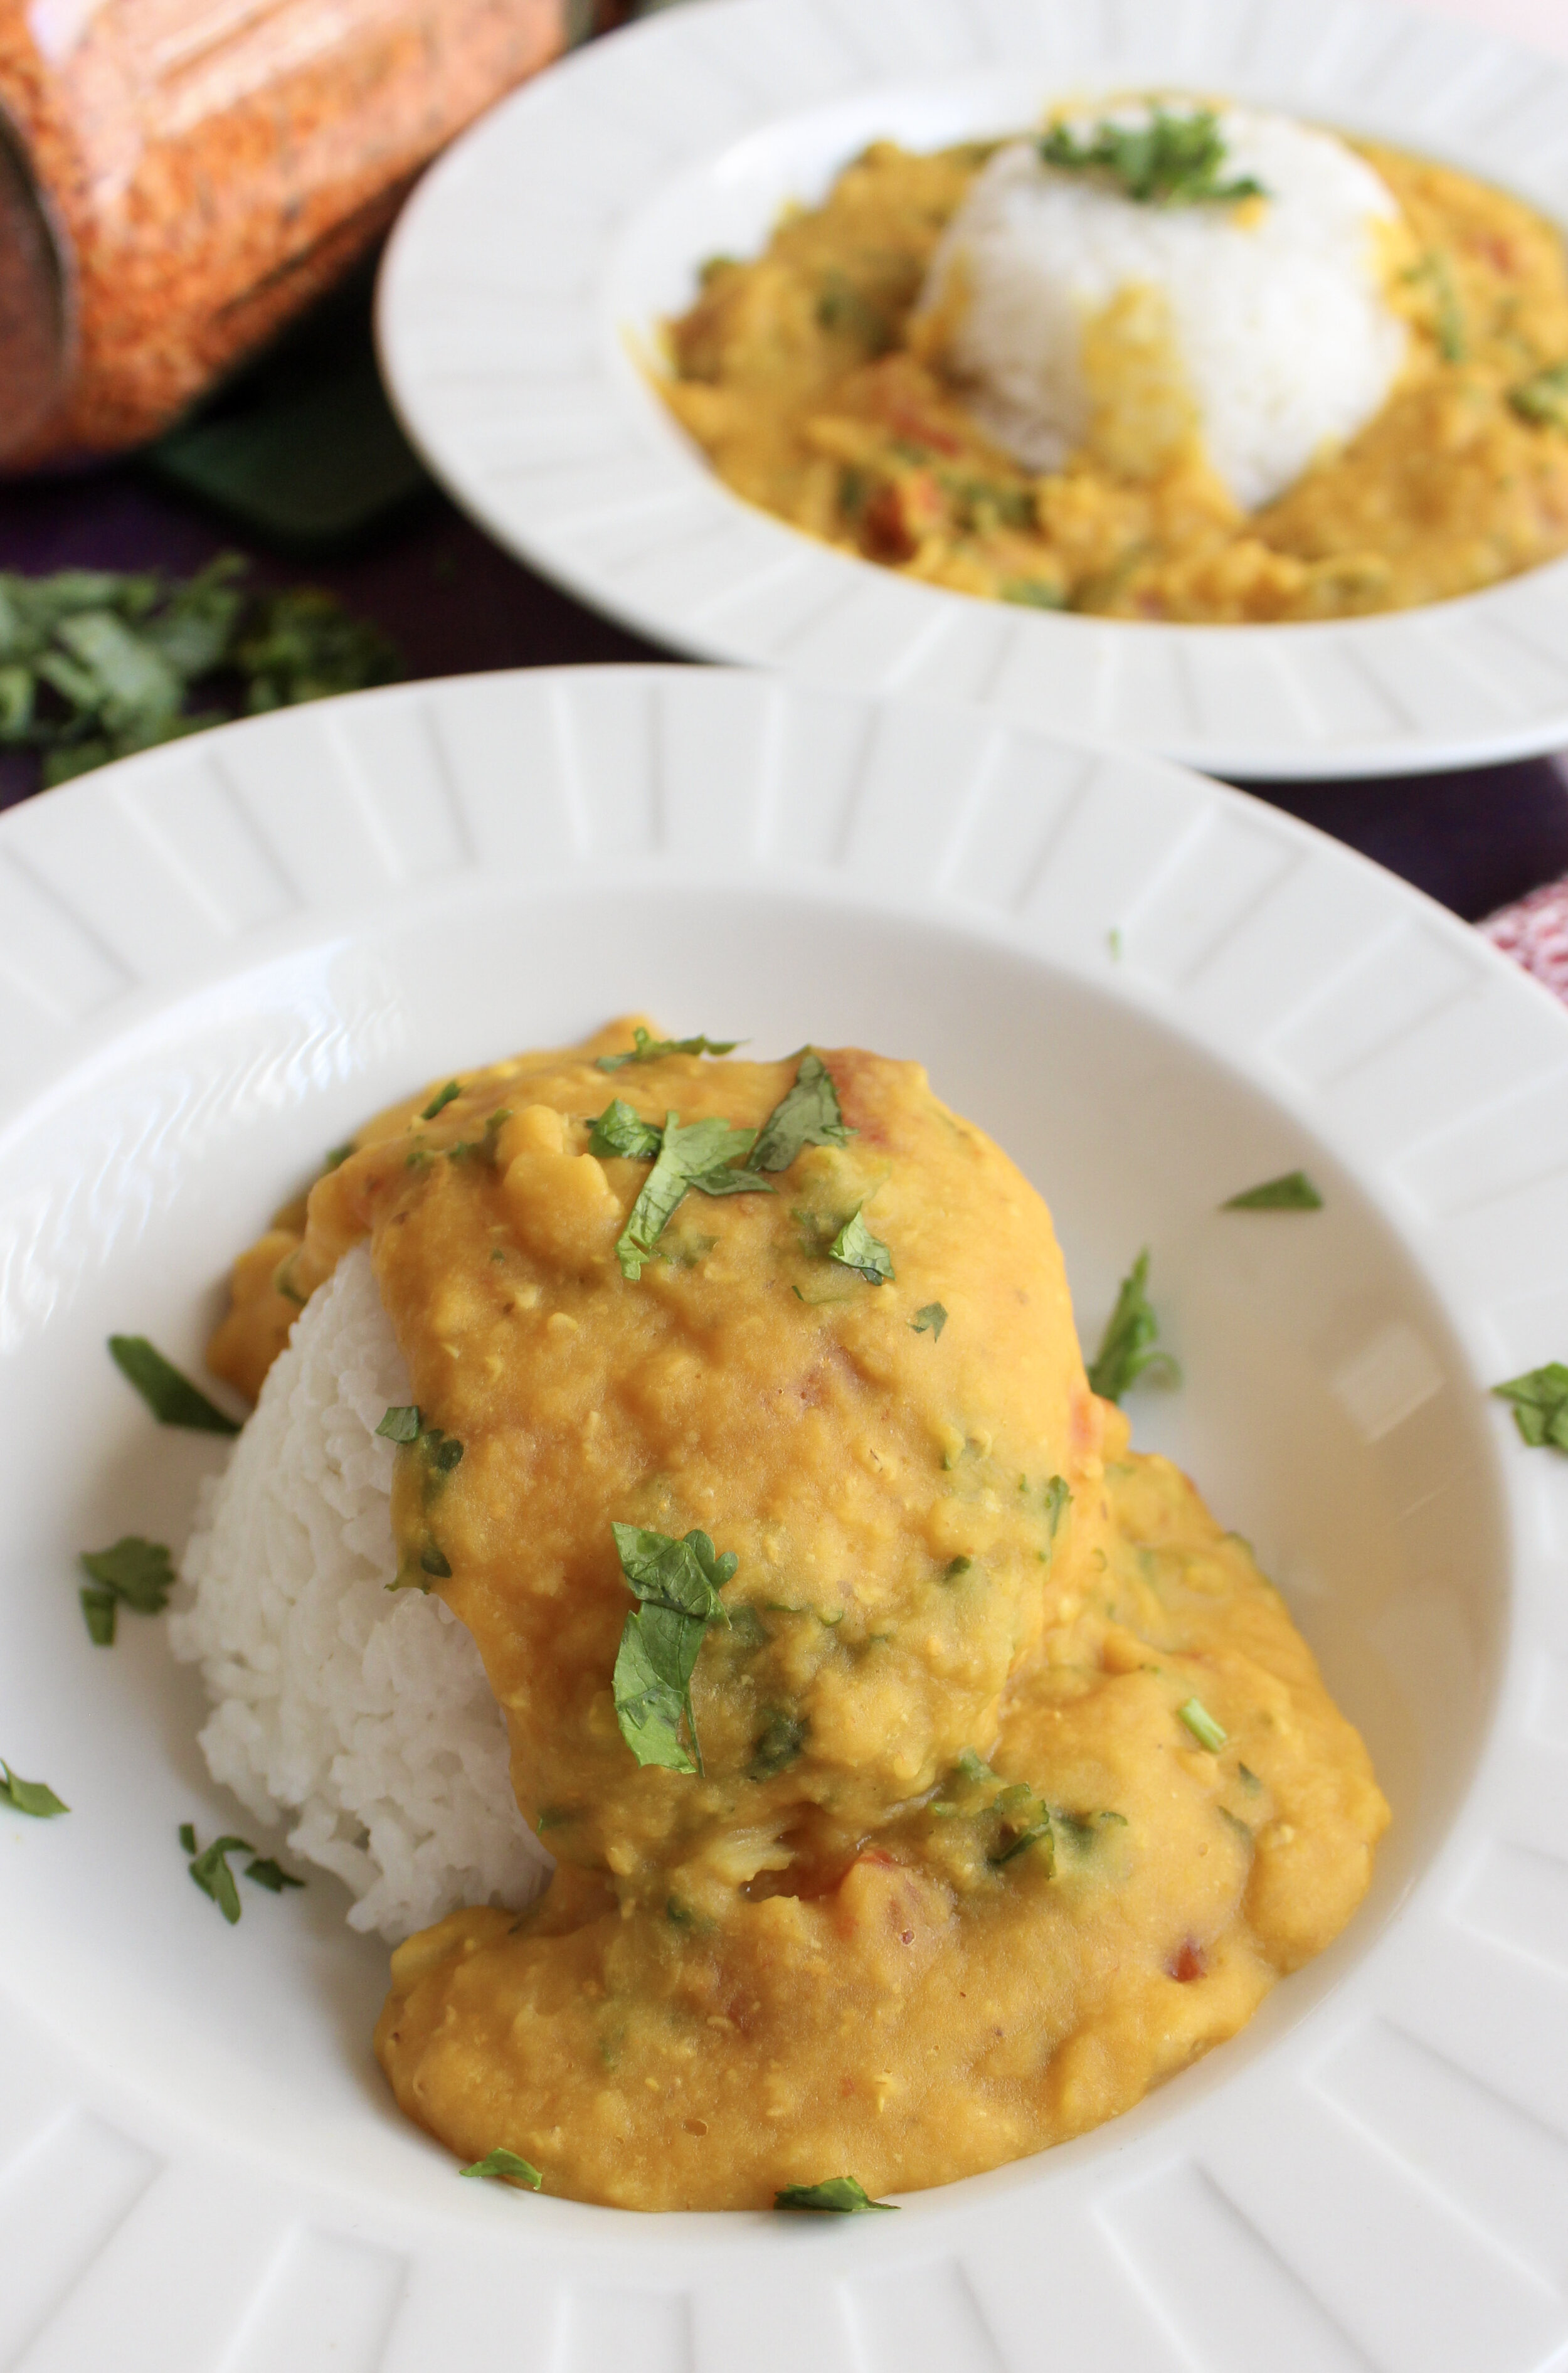 Creamy, satisfying and easy instant pot coconut red lentils. Perfect dish to make on a busy weeknight. Just chop, pour and cook all the ingredients in the instant pot. Full of protein and fiber. #glutenfree #dairyfree #vegan #hightprotein #instantpot #weeknightmeal #easyrecipe www.musicandmunchiesblog.com